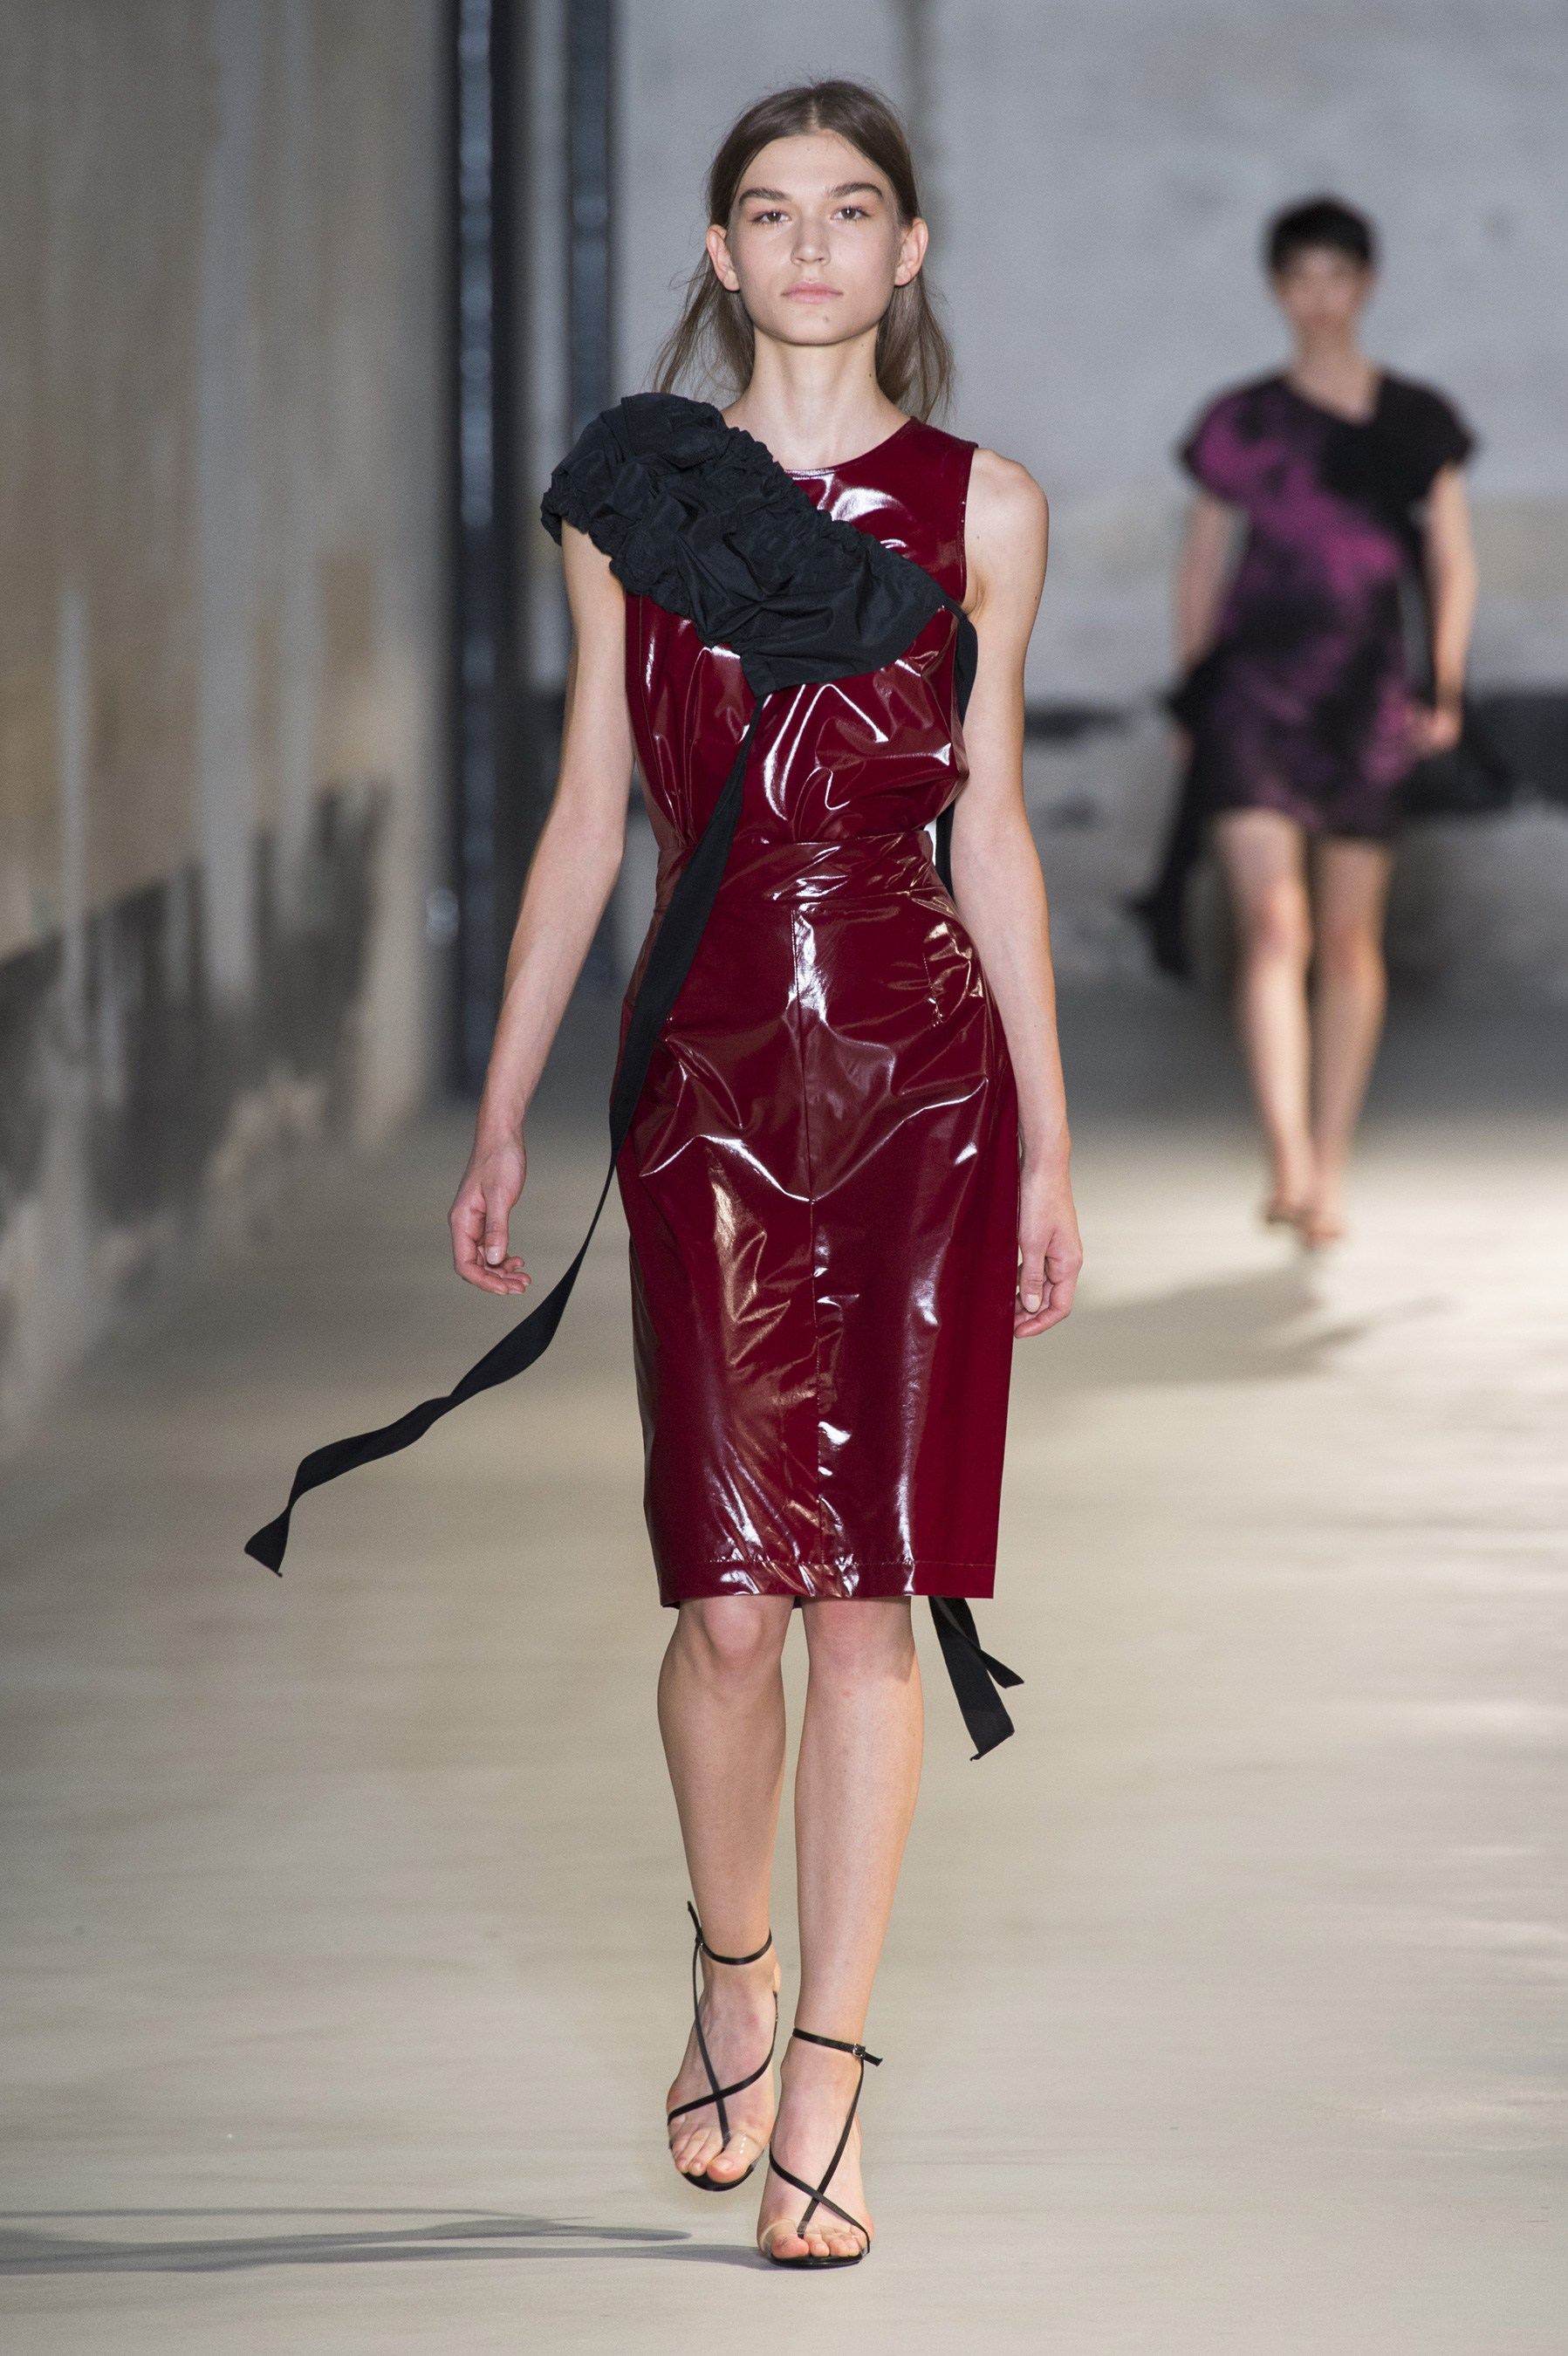 Top 10 Milan Spring 2019 Collections and Fashion Shows